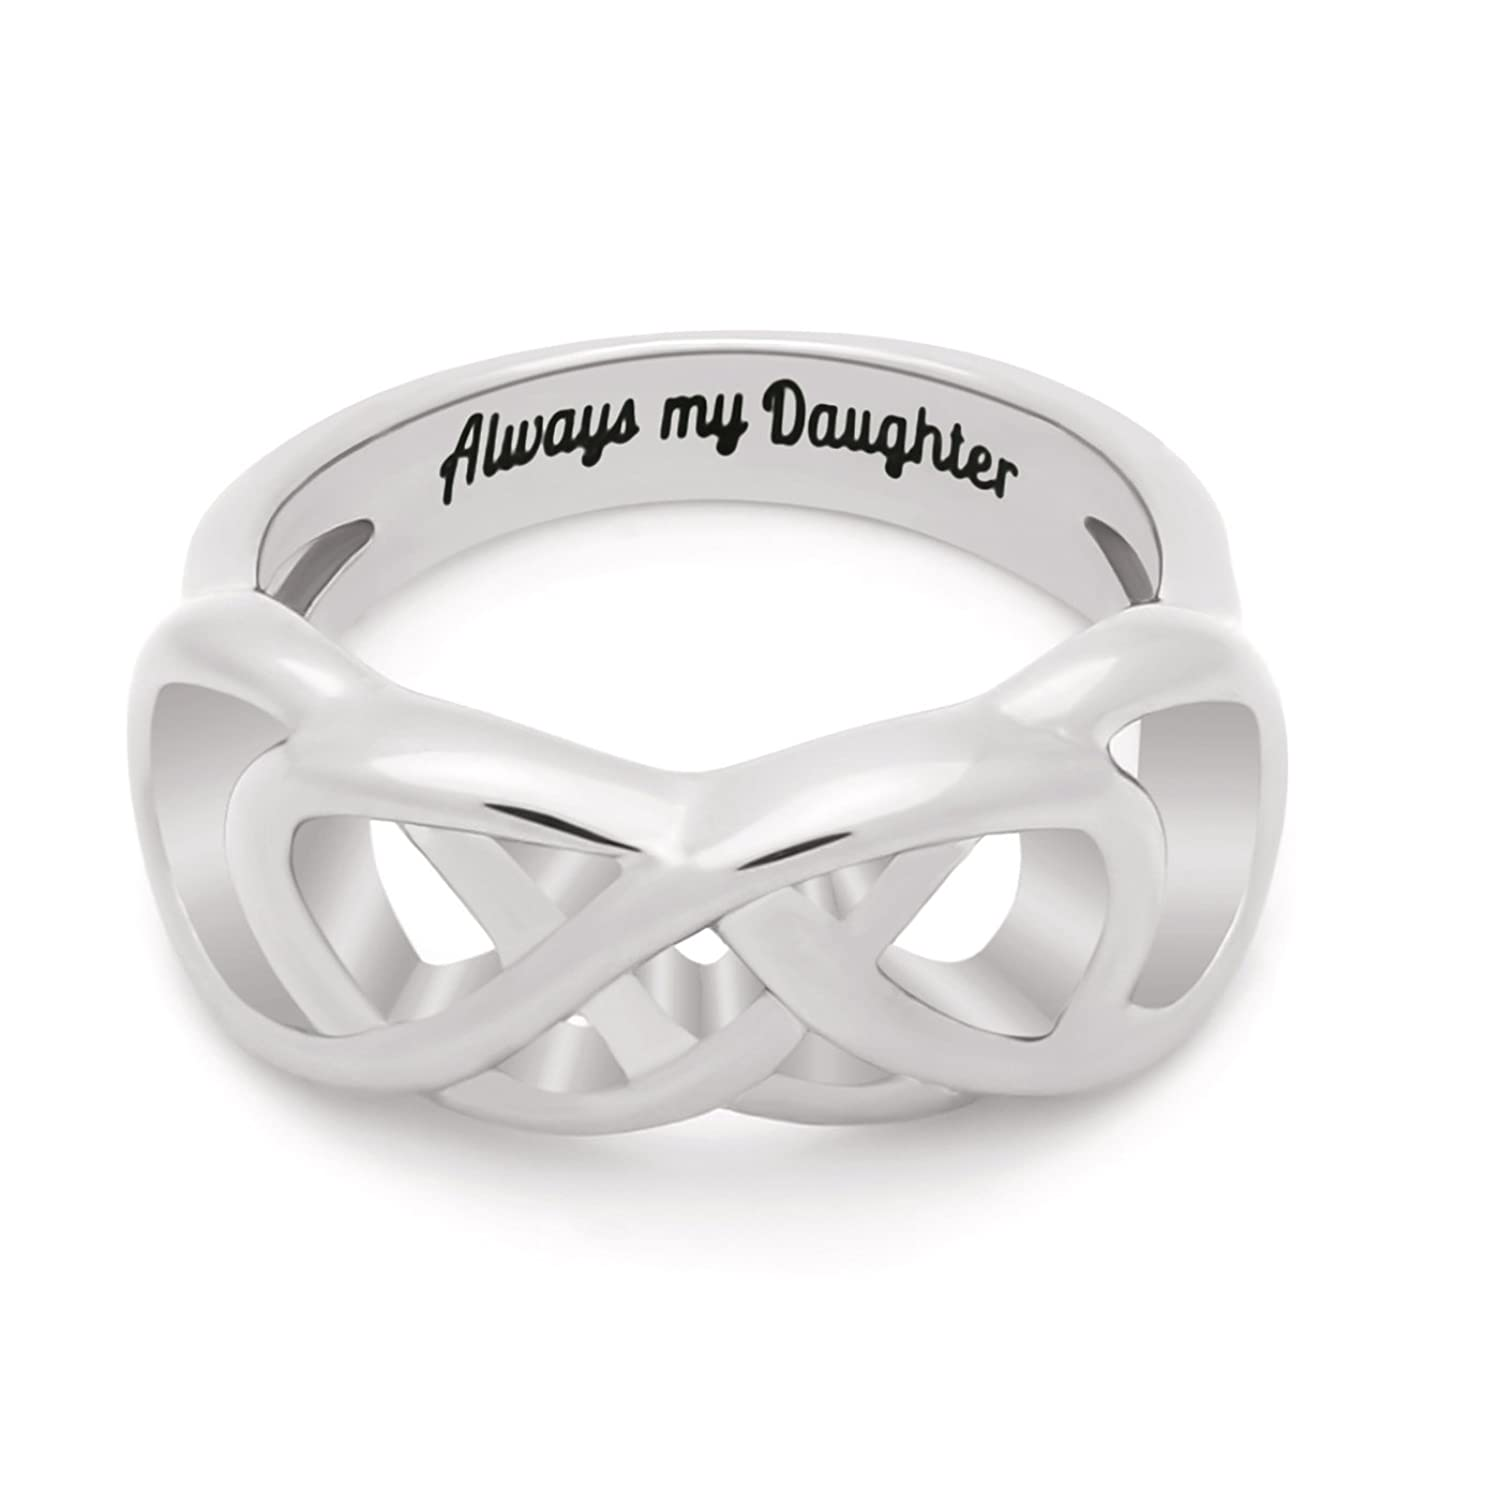 Amazon daughter ring infinity ring double infinity ring for amazon daughter ring infinity ring double infinity ring for daughter promise ring always my daughter engraved on simple infinity ring biocorpaavc Gallery